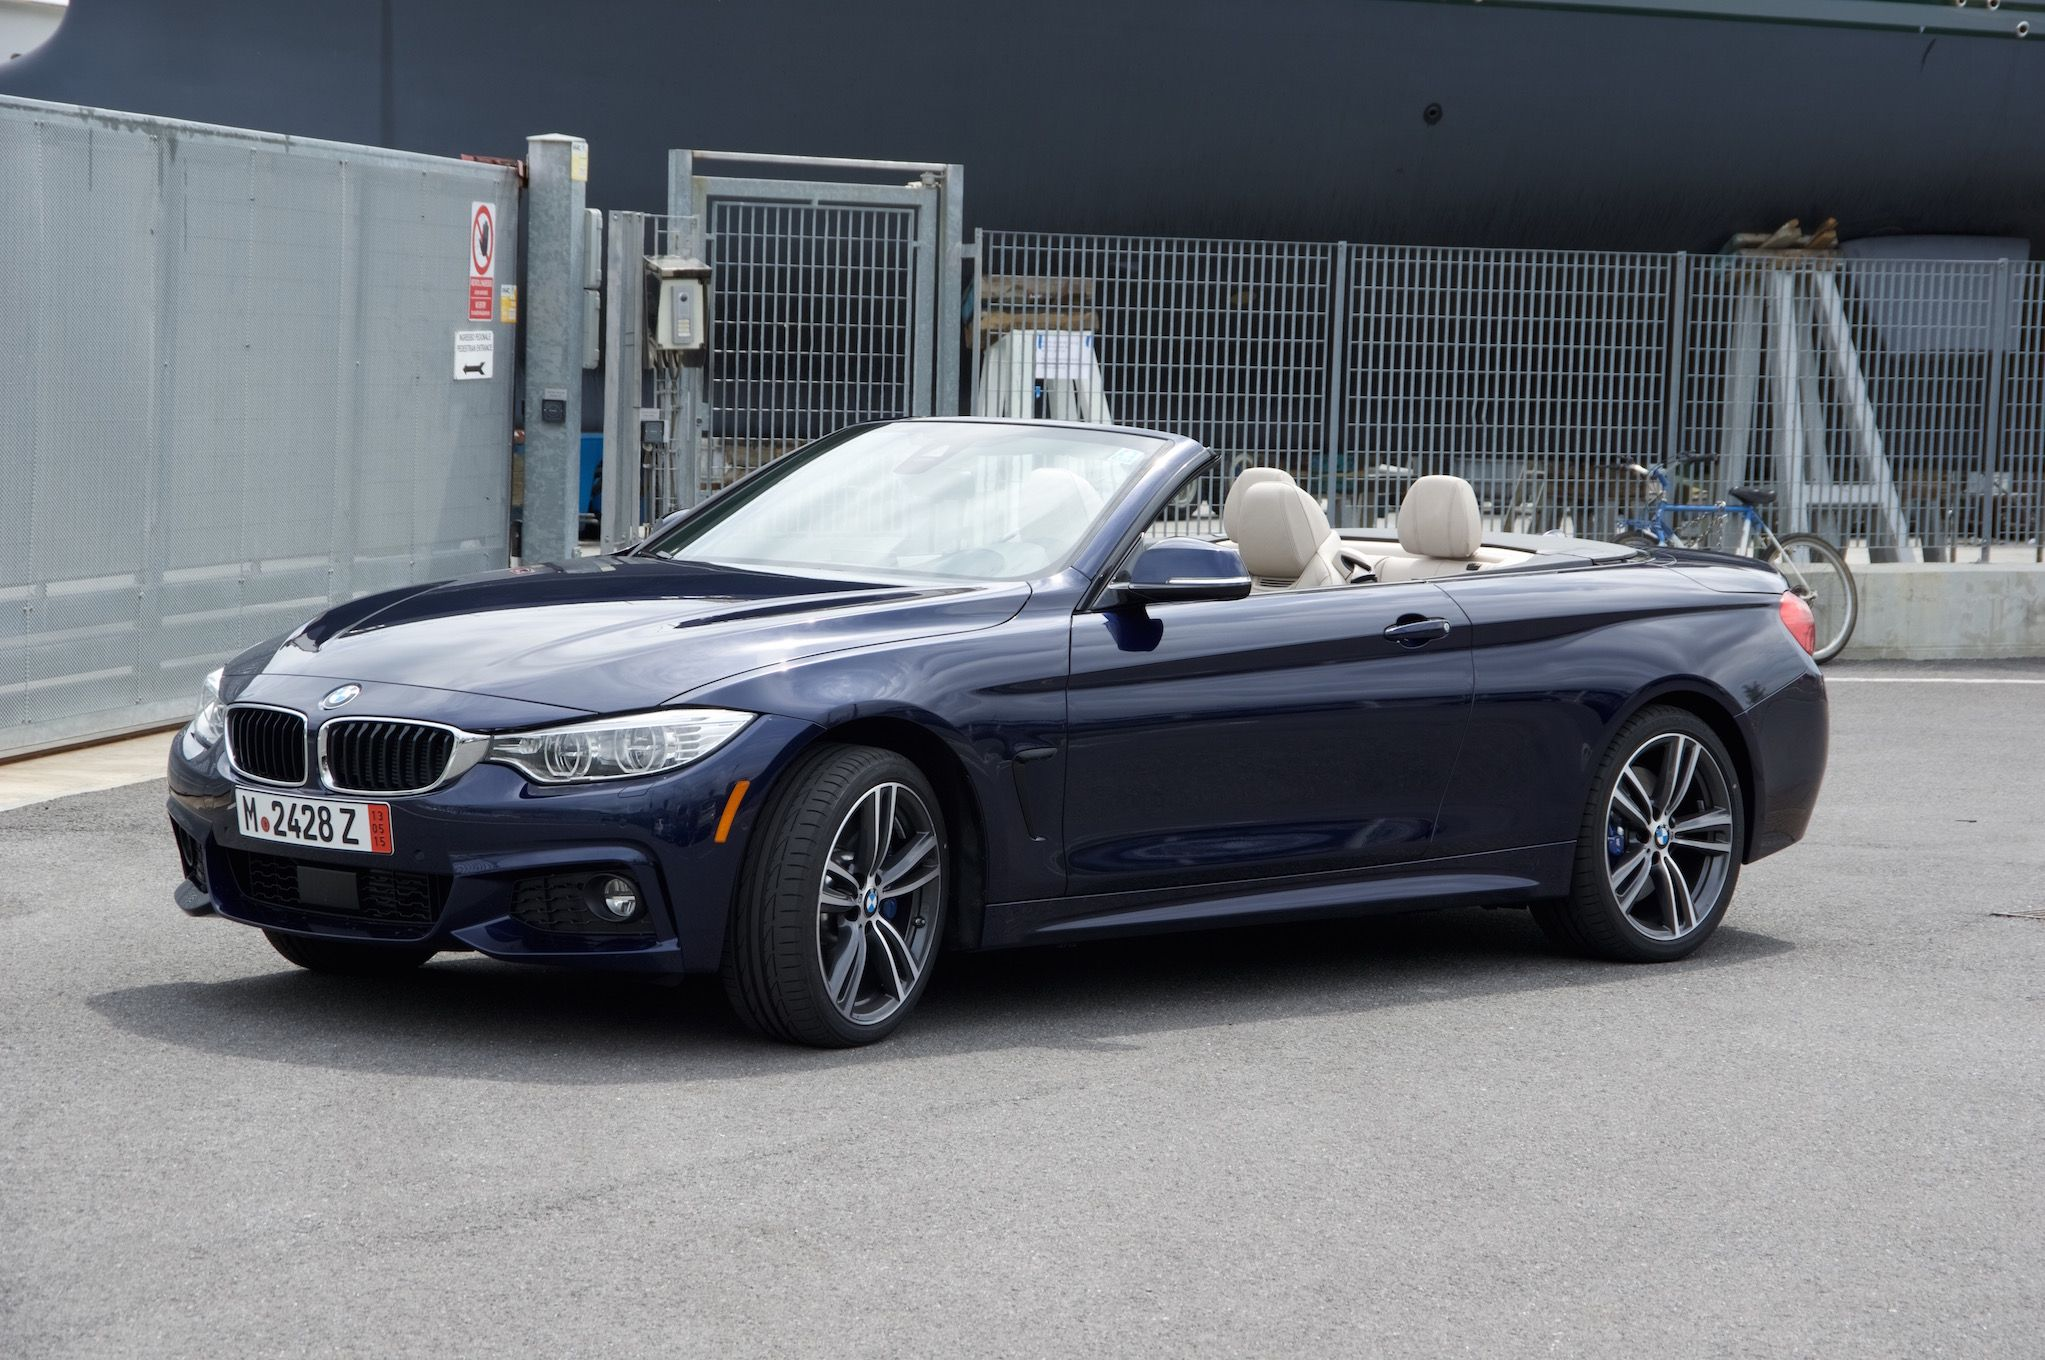 2015 Bmw 435i Xdrive Convertible In Tanzanite Blue European Delivery Bmw 435i Blue